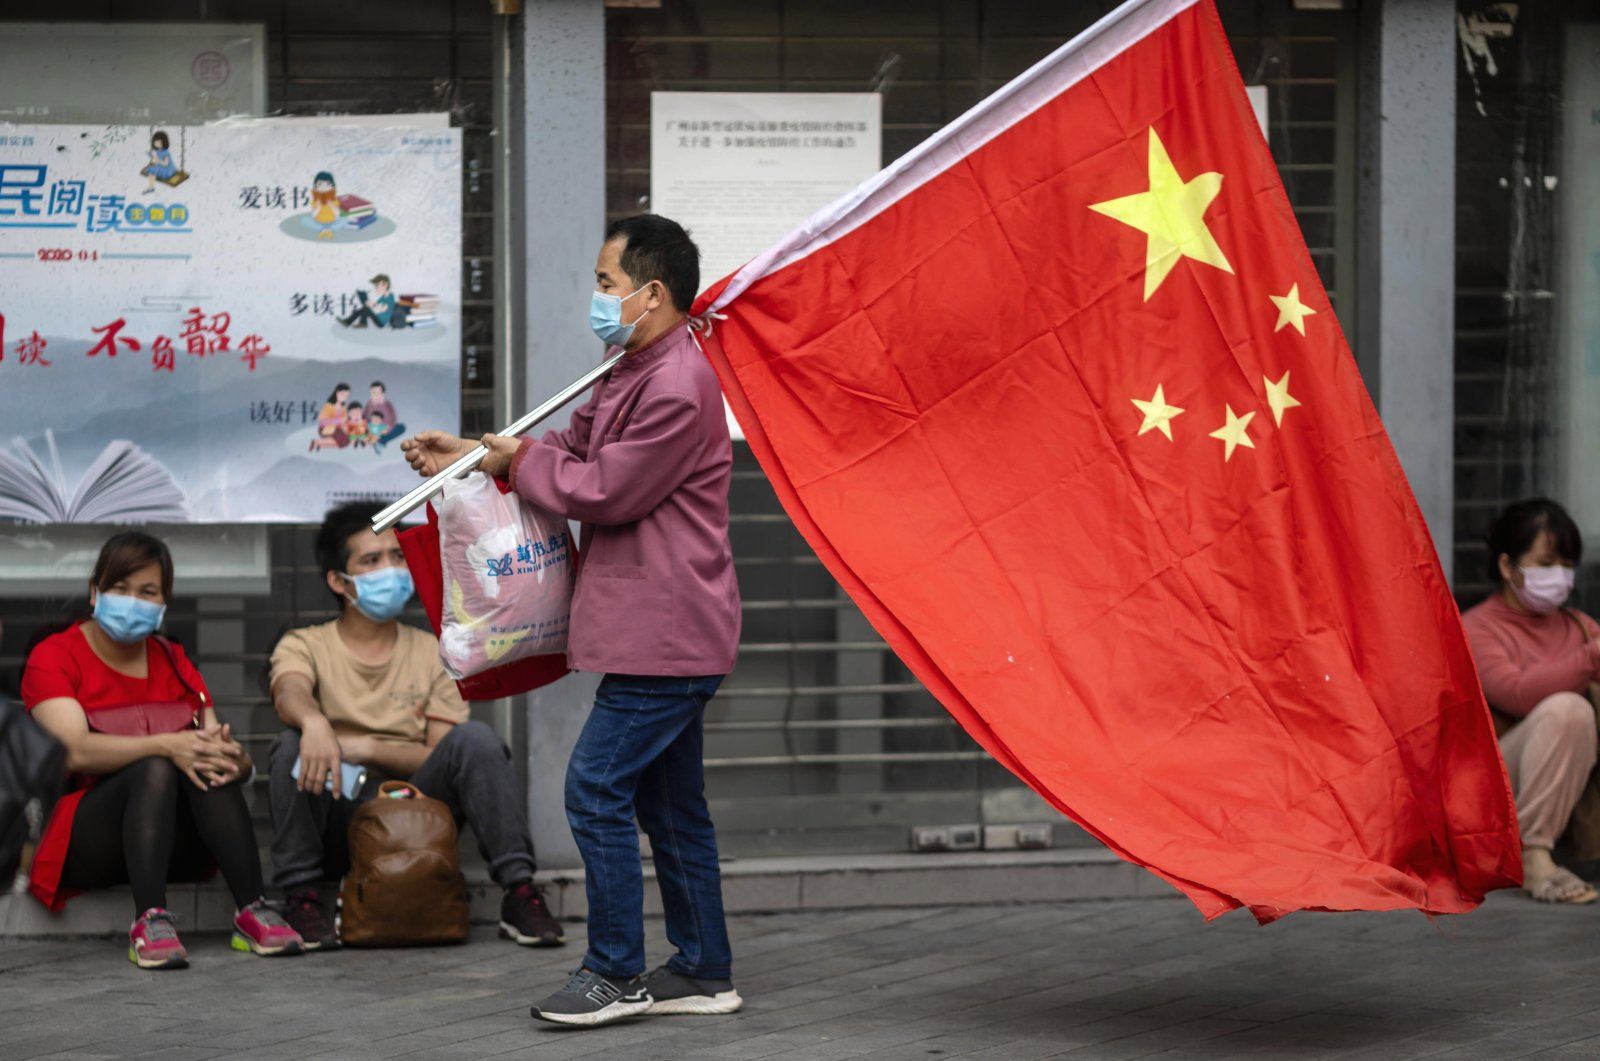 A man wearing a mask and carrying a Chinese flag walks on the street in Guangzhou, Guangdong province, China, April 28, 2020. (EPA Photo)